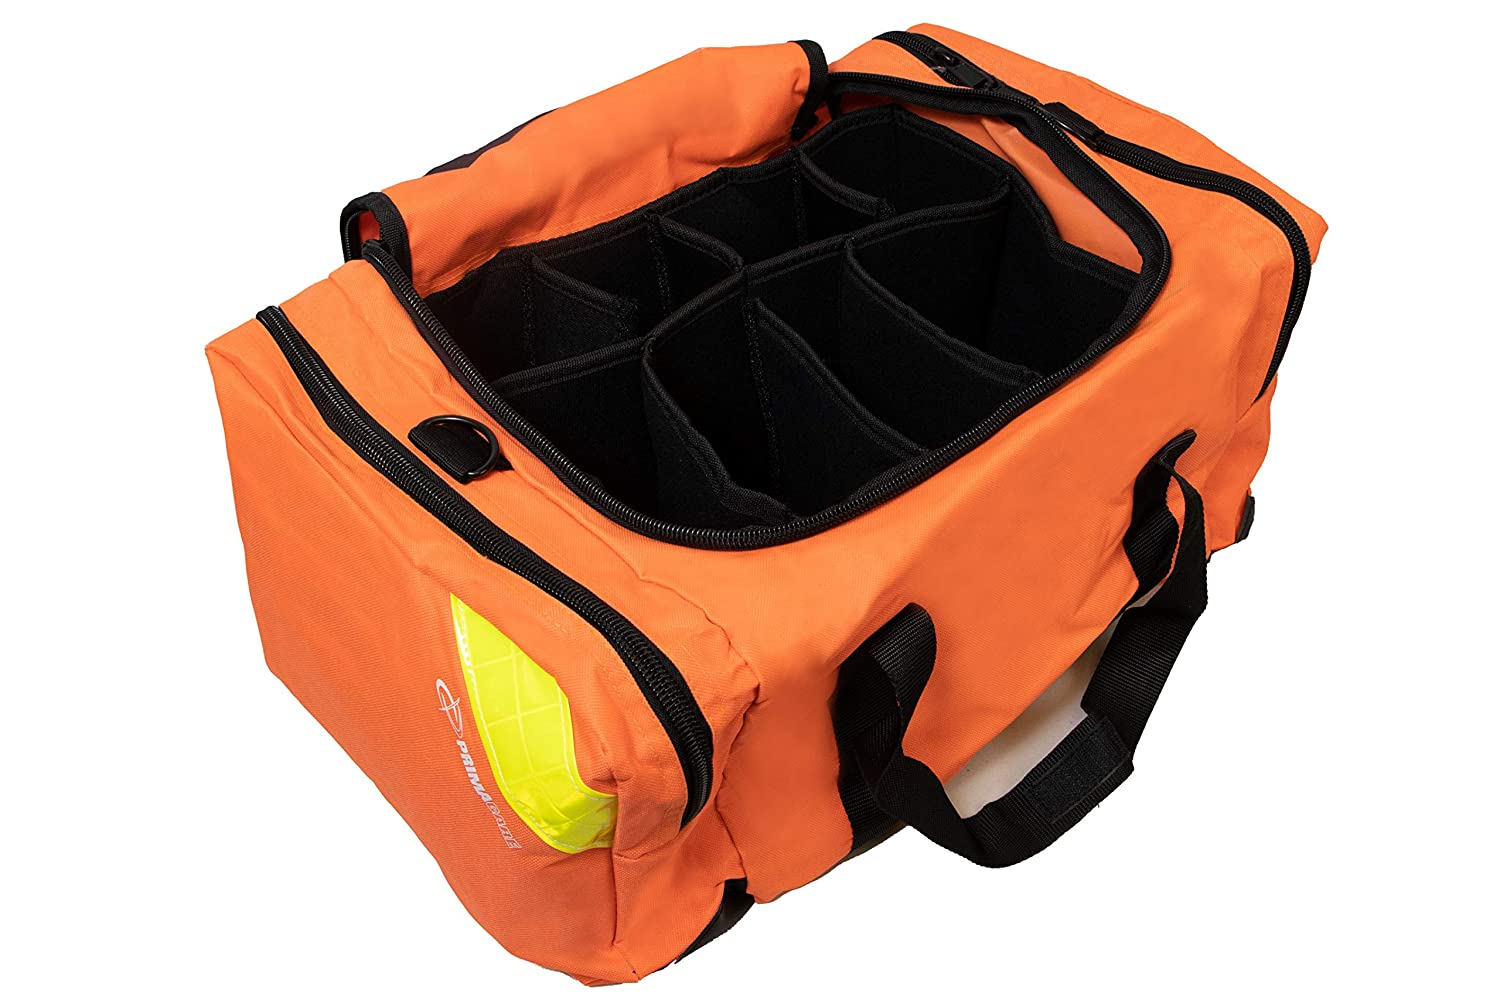 Primacare KB-4135-O First Responder Bag for Trauma, Professional Compartment Kit Carrier for Emergency Medical Supplies, Orange, 21x15x5 inches: First Aid Kits: Health & Personal Care